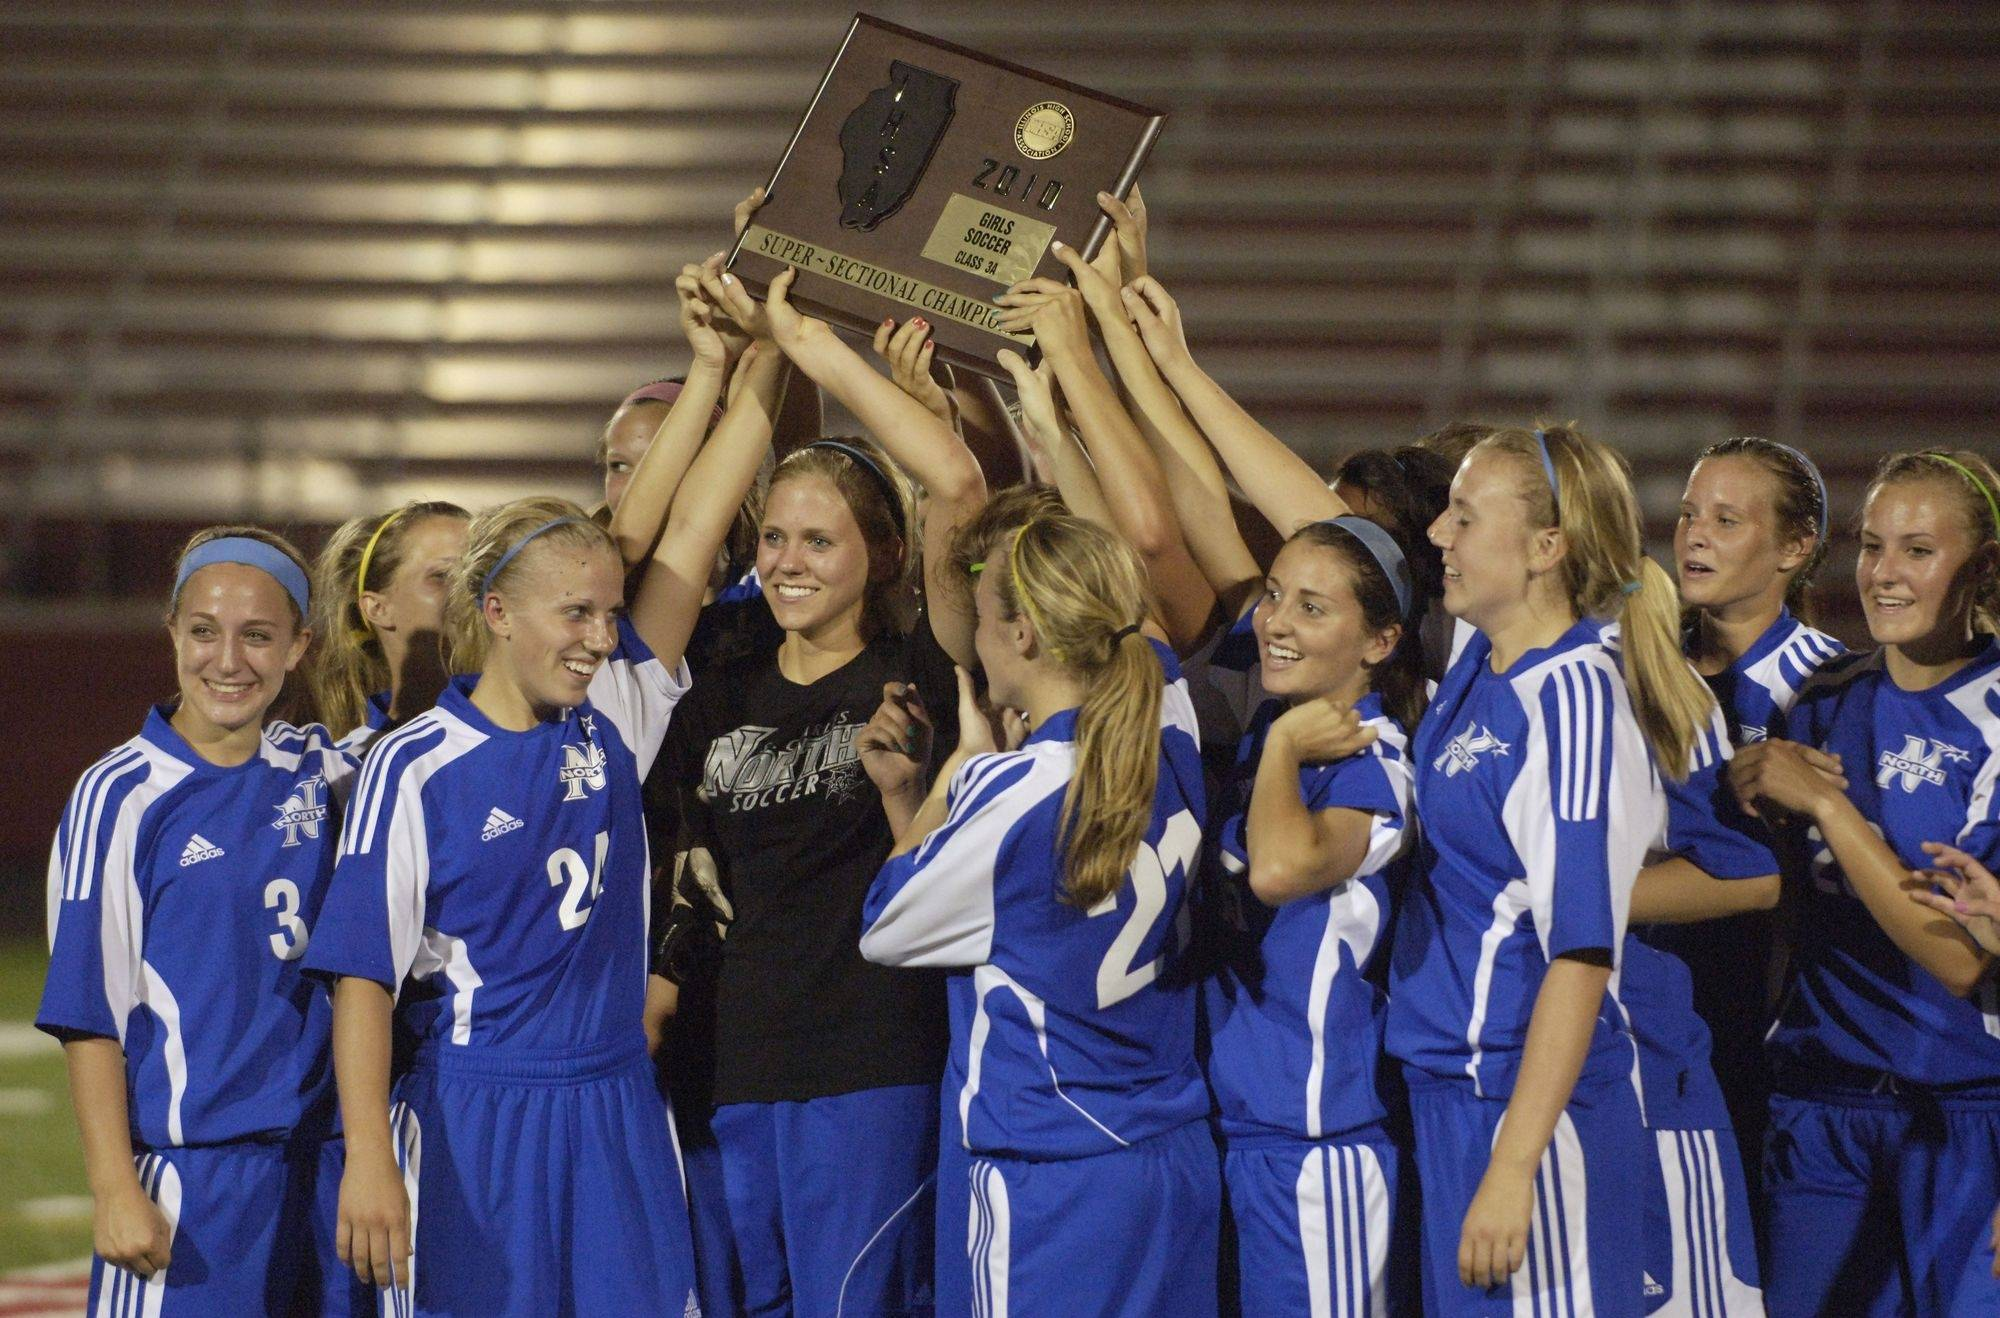 St. Charles North players lift their trophy after defeating Barrington in the Barrington Class 3A girls soccer supersectional.